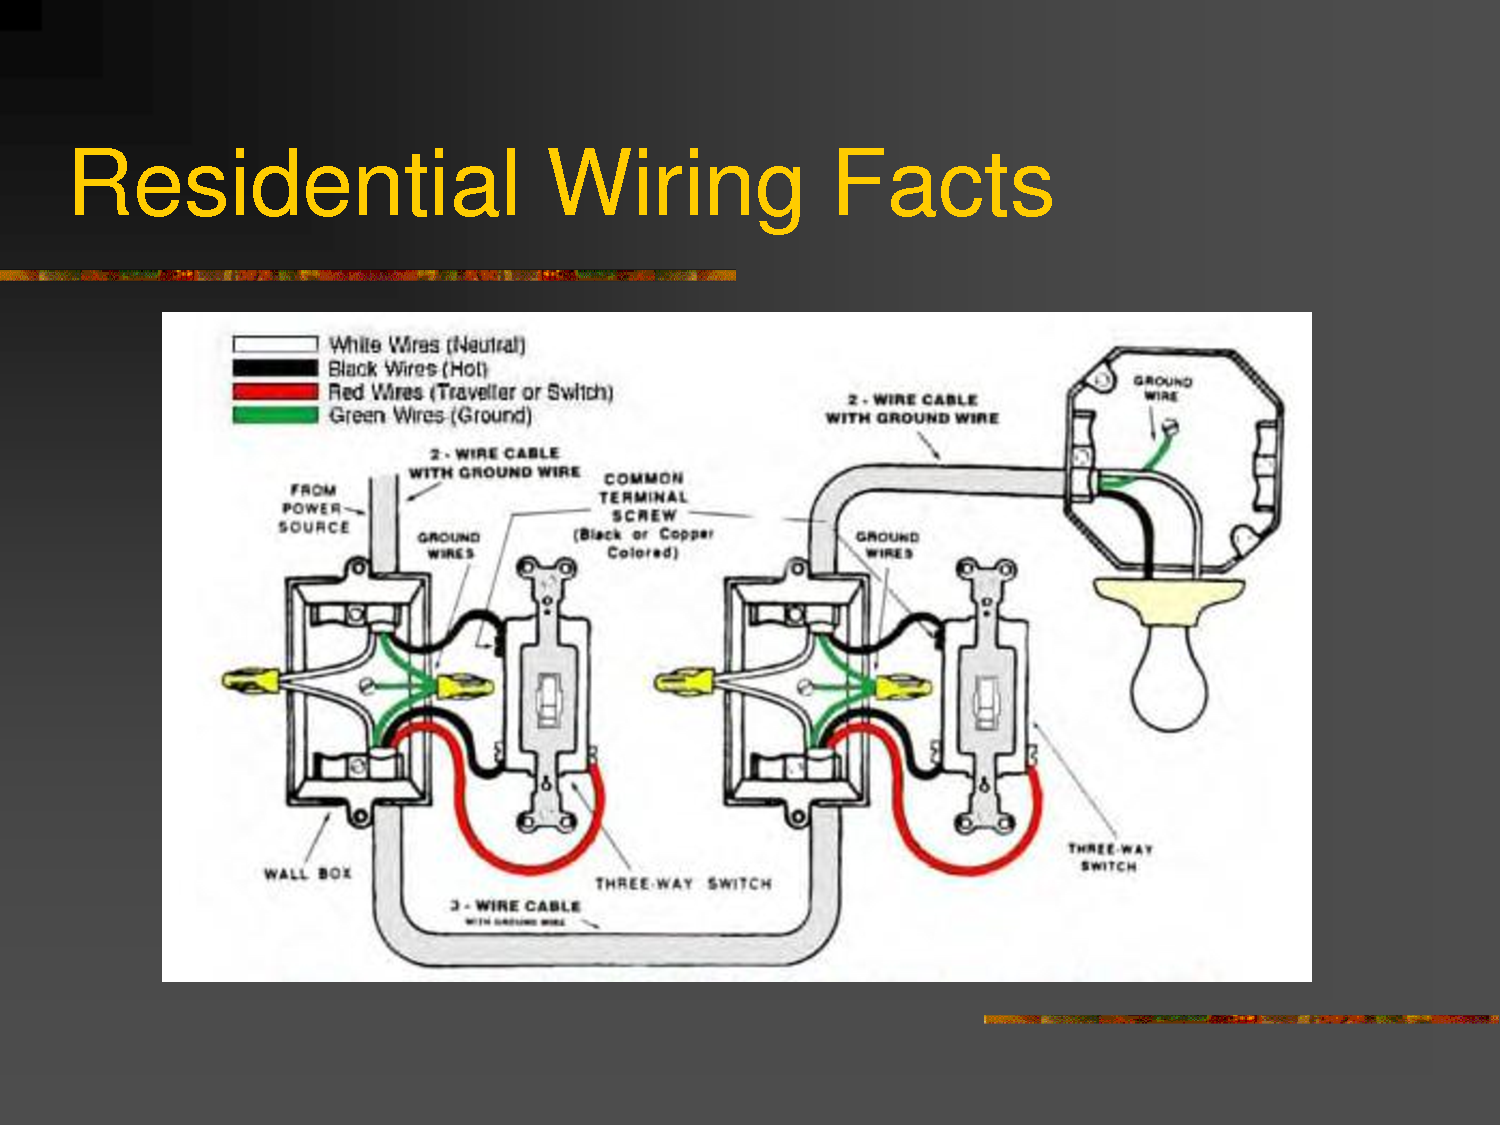 Wiring Diagram For A Building : Best images of residential wiring diagrams house